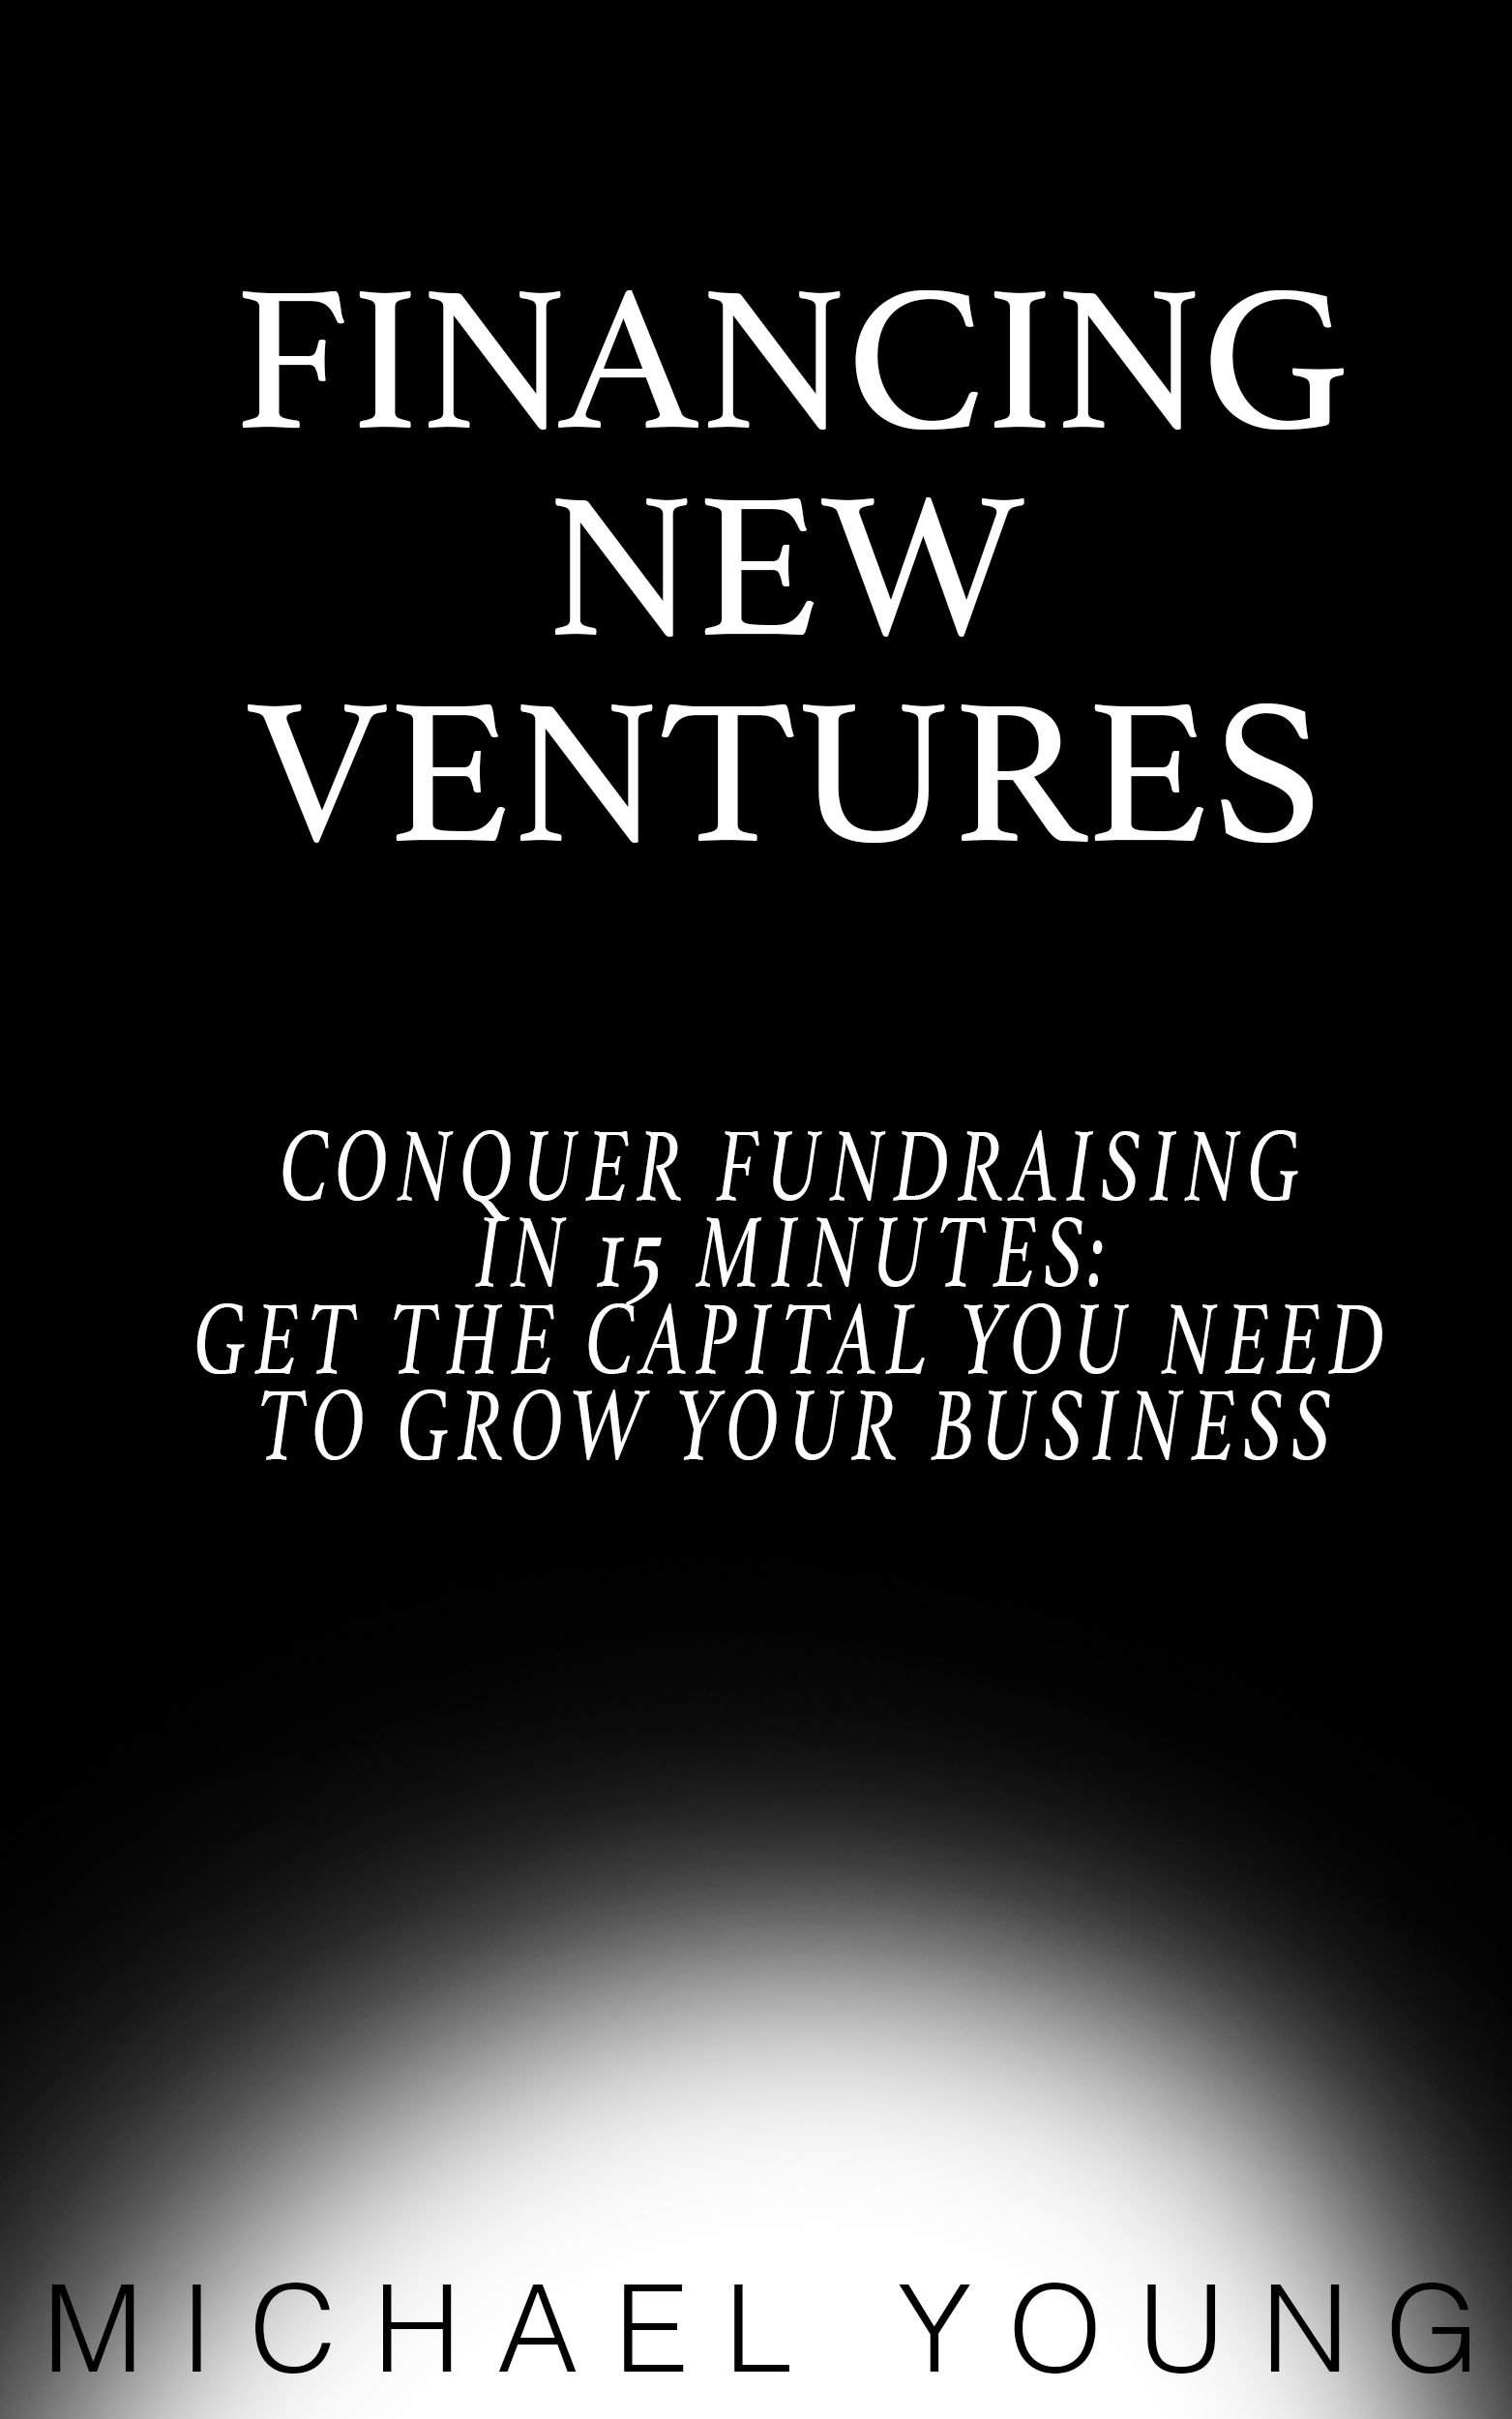 Financing New Ventures: Conquer Fundraising in 15 Mins: Get the Capital You Need to Grow Your Business